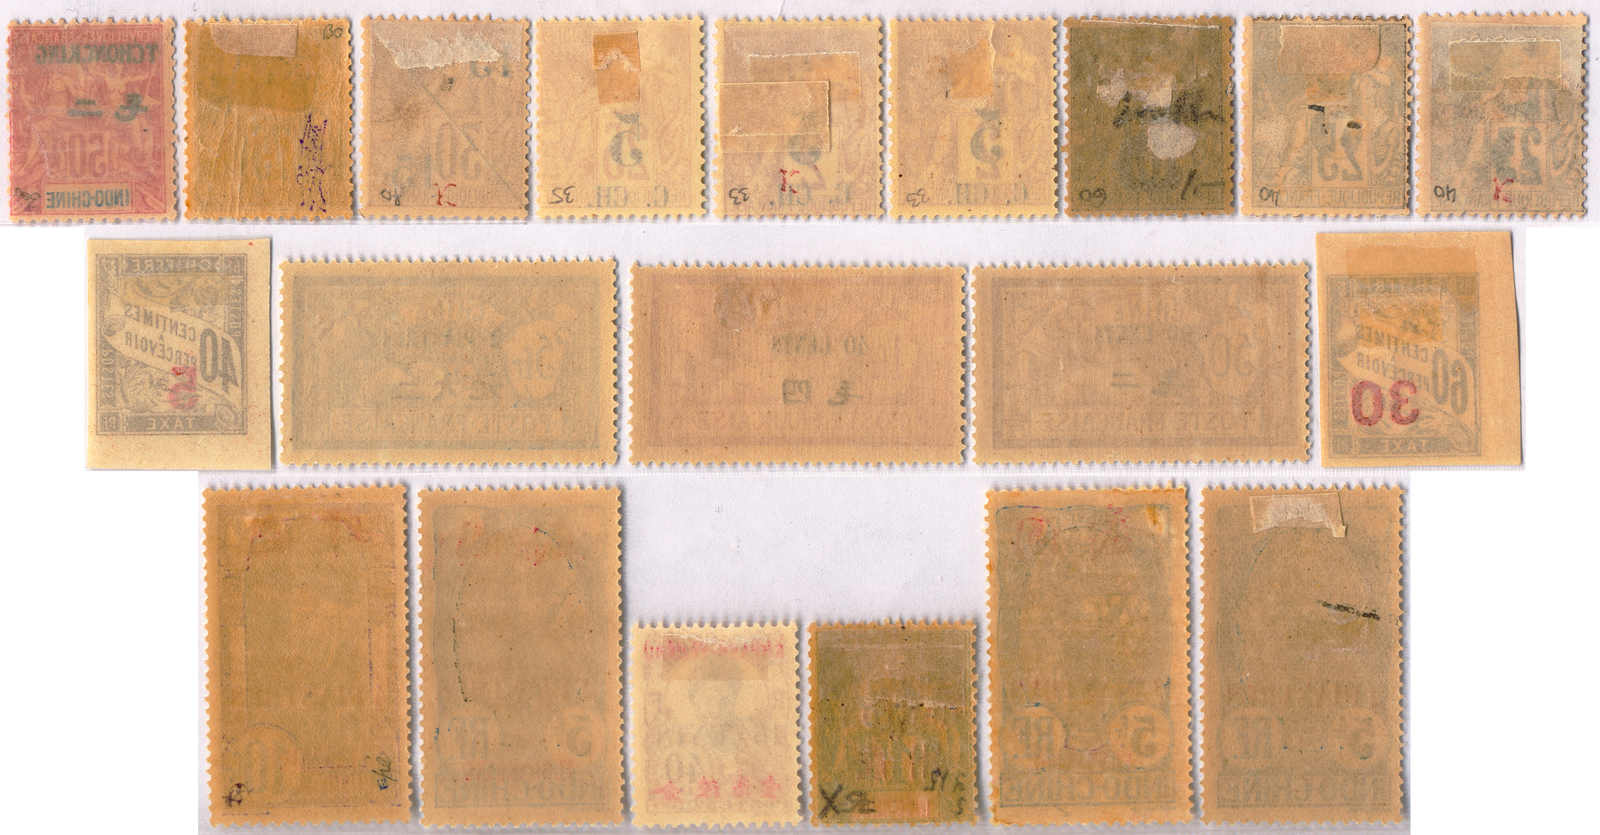 Lot 30089 - China collections and lots french colonies asia -  Classicphil GmbH Auction #1